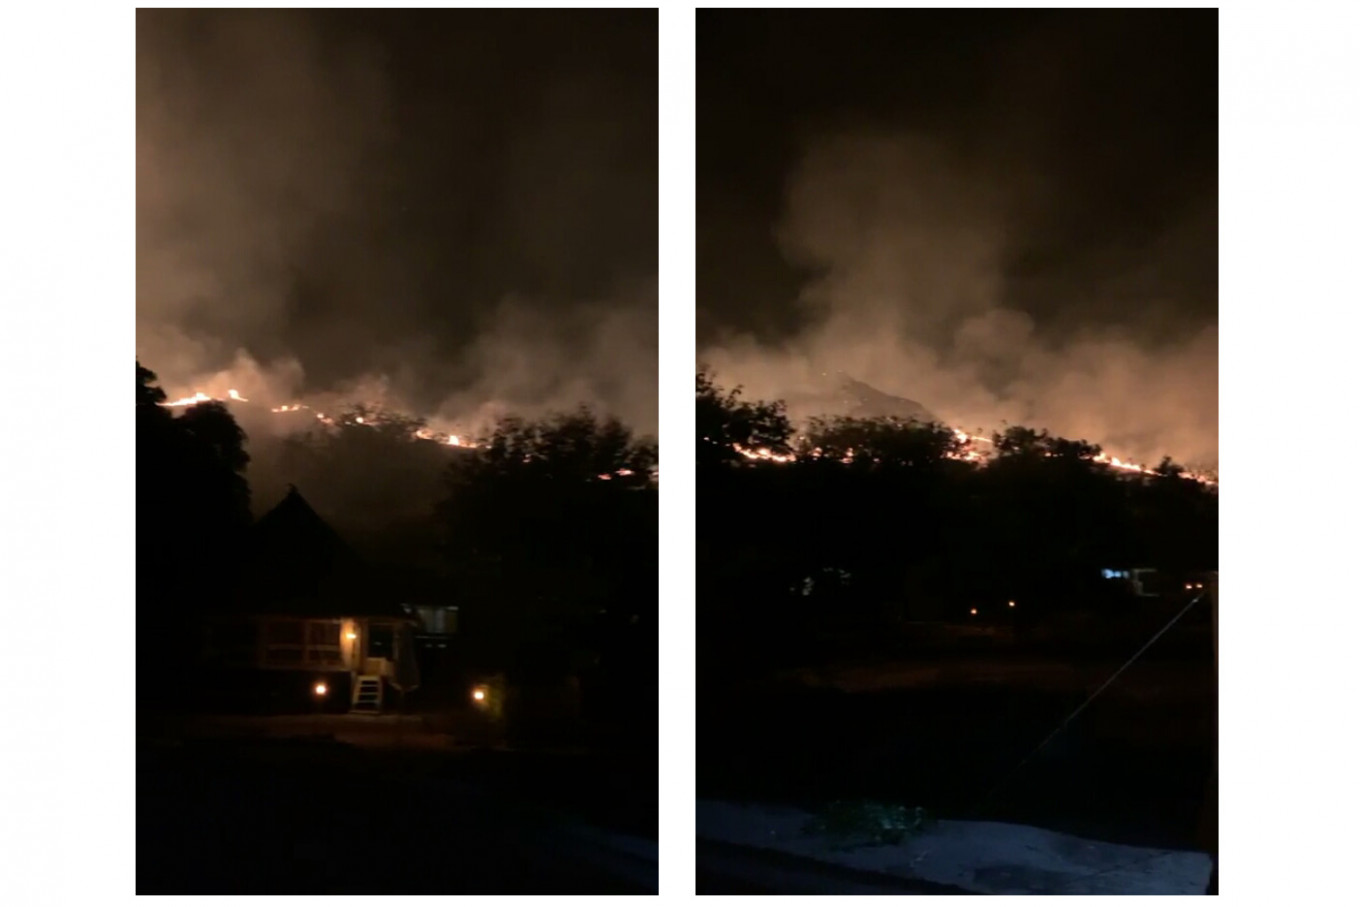 Labuan Bajo wildfire traps dozens of tourists for 5 hours at local dive resort